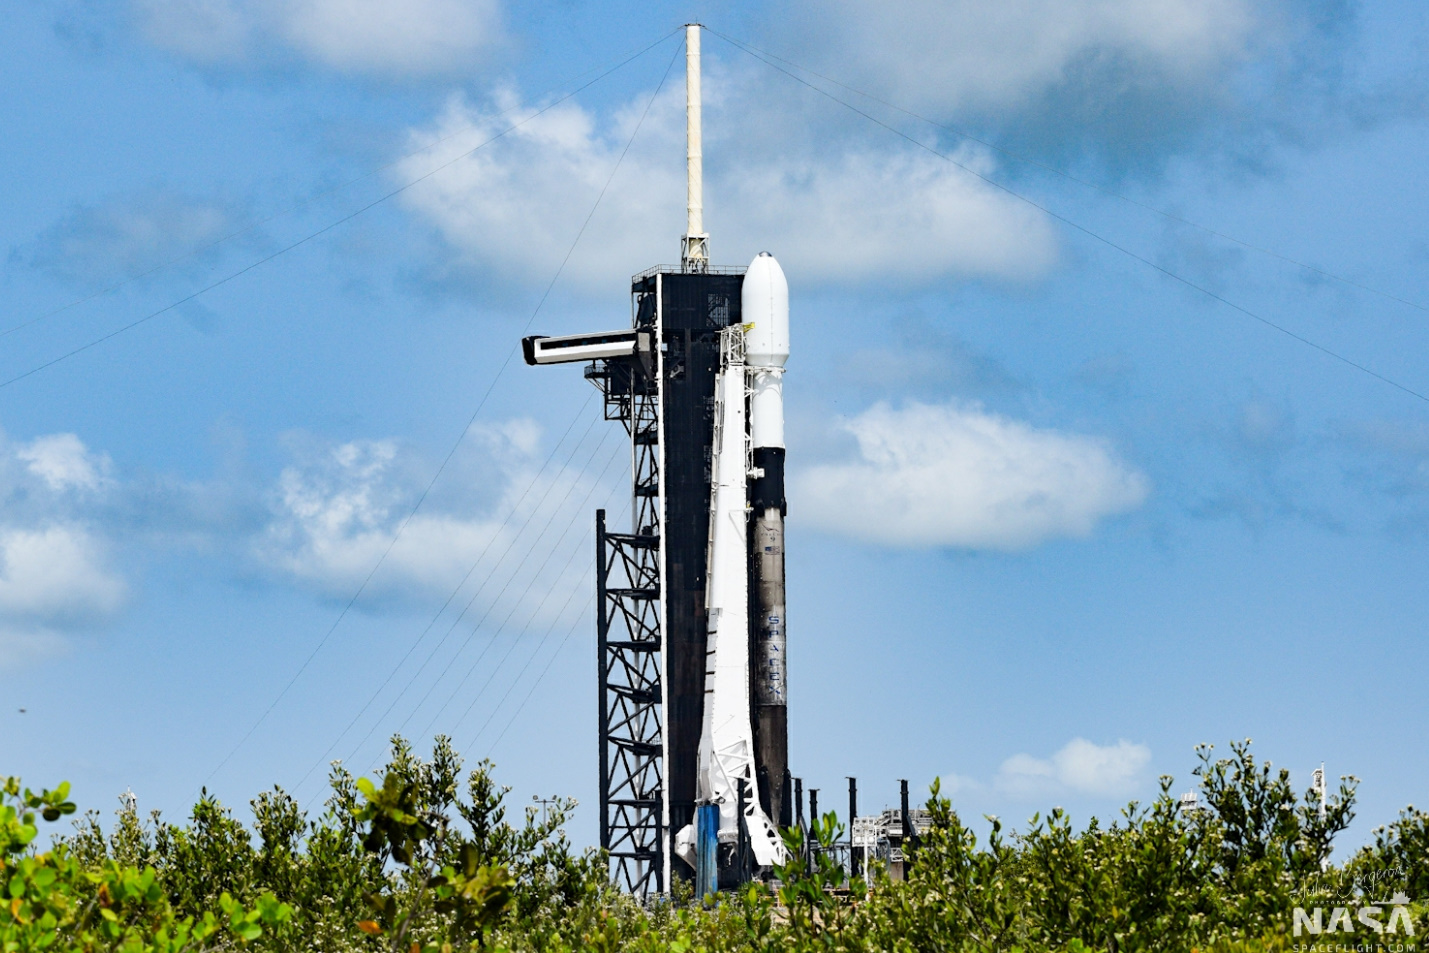 SpaceX scrubs Starlink v1.0 L9 mission